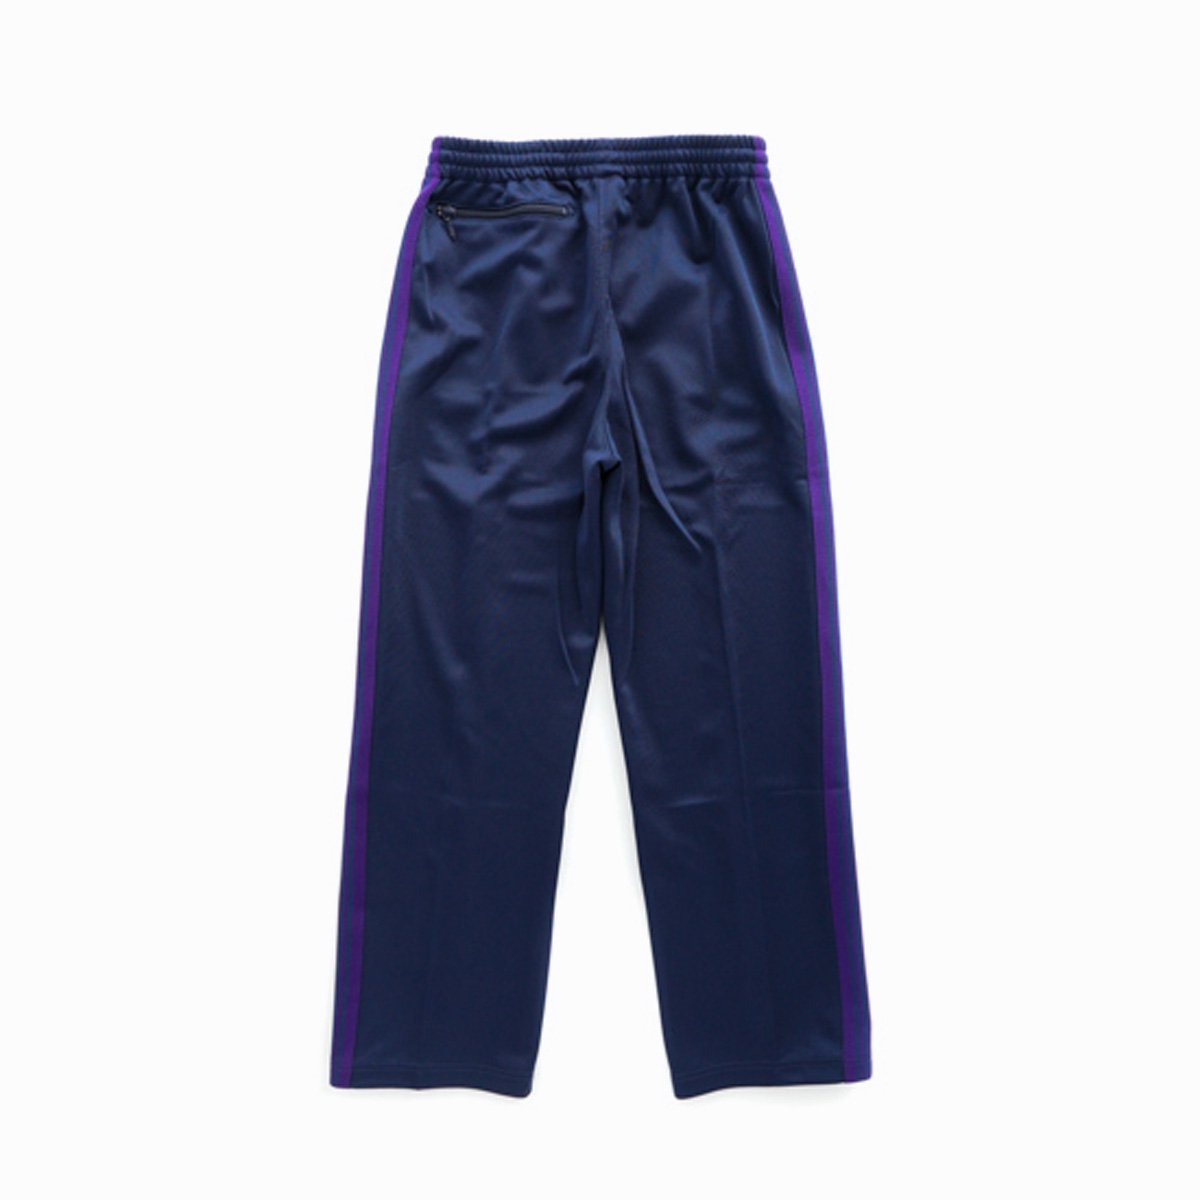 NEEDLES  TRACK PANT - POLY SMOOTH  (Navy)2